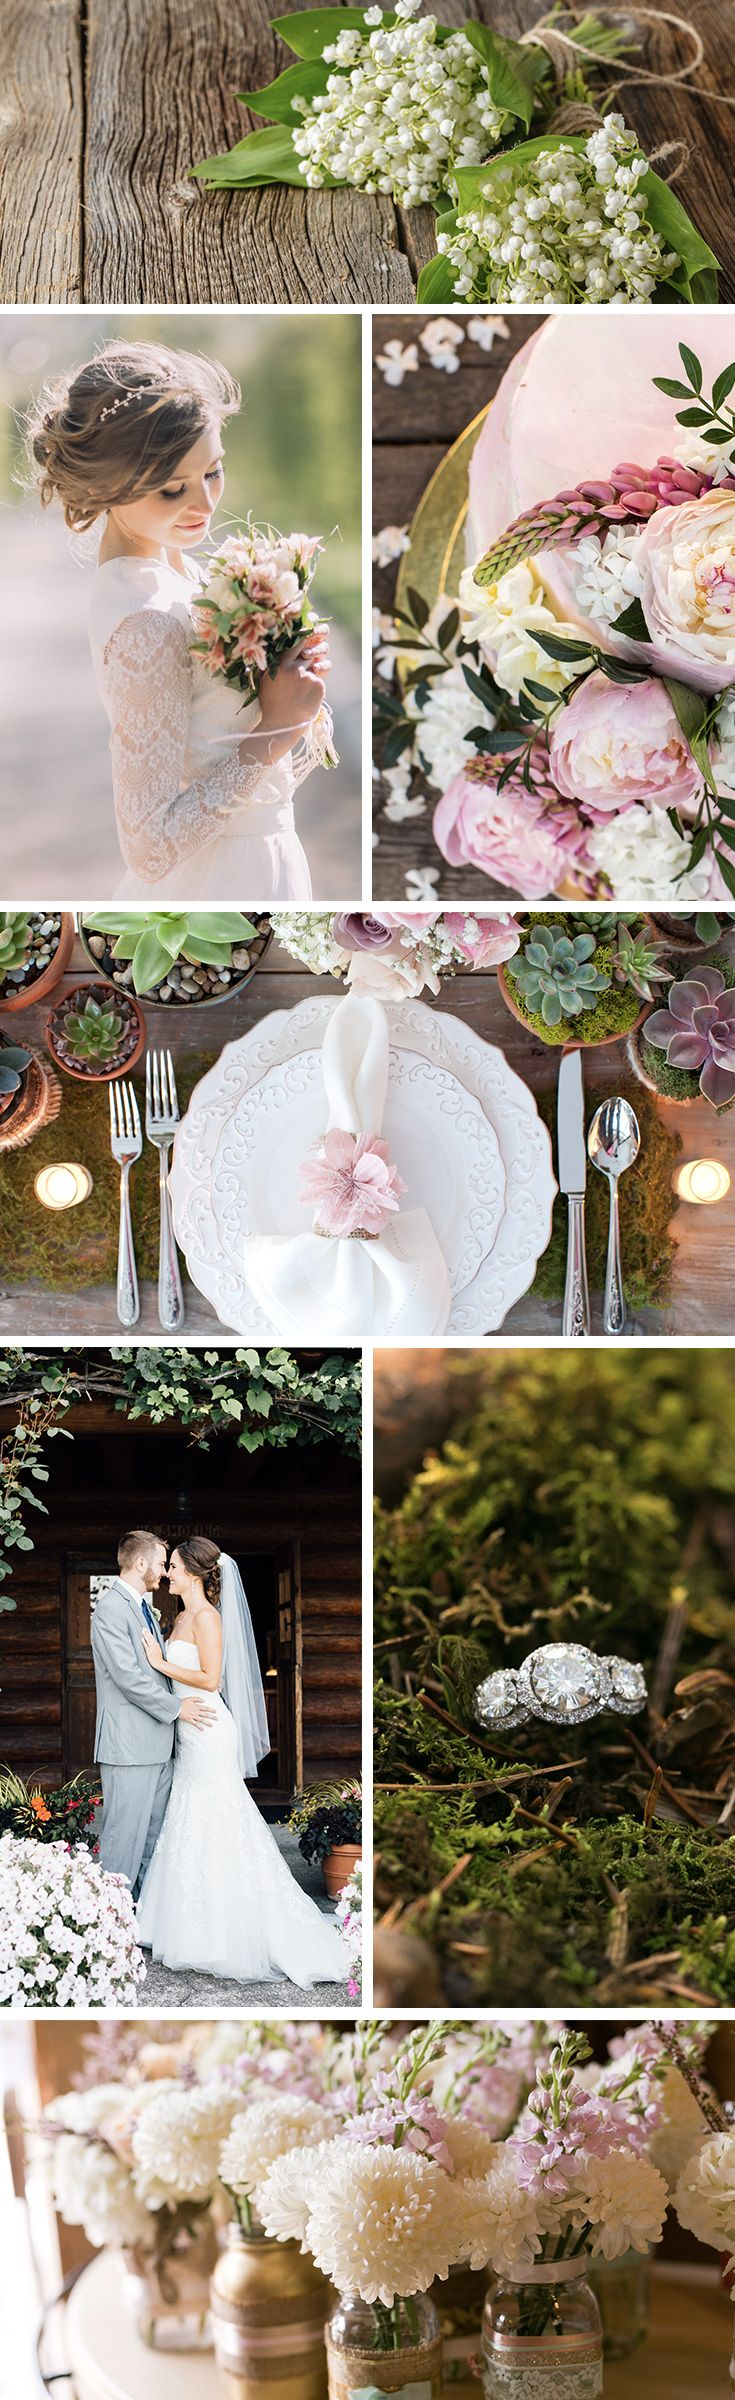 This Pacific Northwest wedding venue, located near Seattle